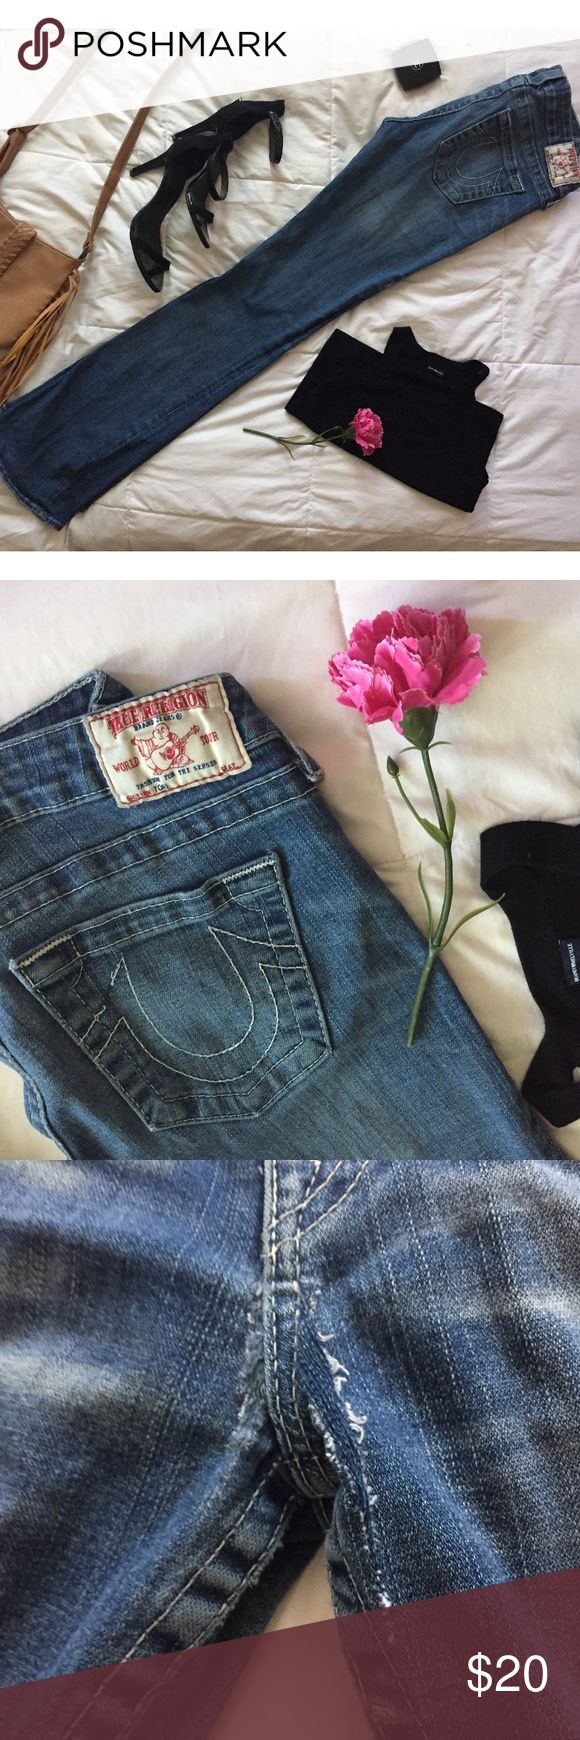 True Religion Bootcut Jeans sz. 29 Needs patch in crotch as picture shows. Good condition other than that. This repair cost about $10 at a local dry cleaner or seamstress and so is taken off the price as a discount :) True Religion Jeans Boot Cut